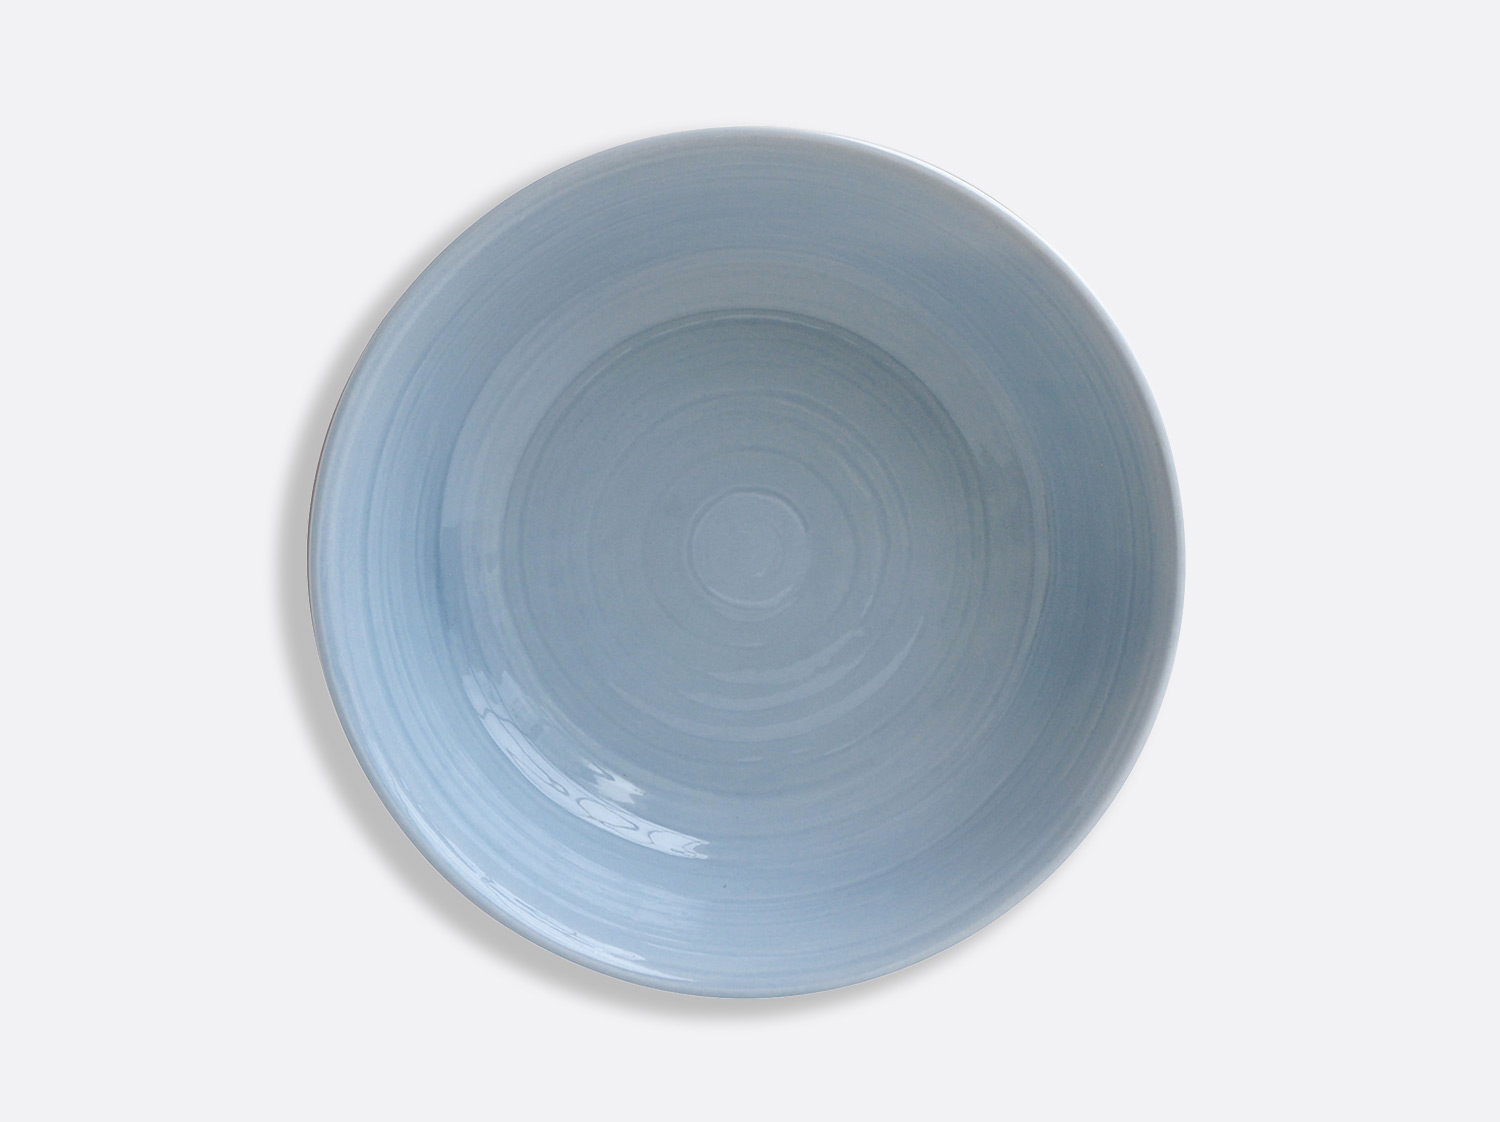 Compotier creux 25 cm - Bleu en porcelaine de la collection Origine bleu Bernardaud